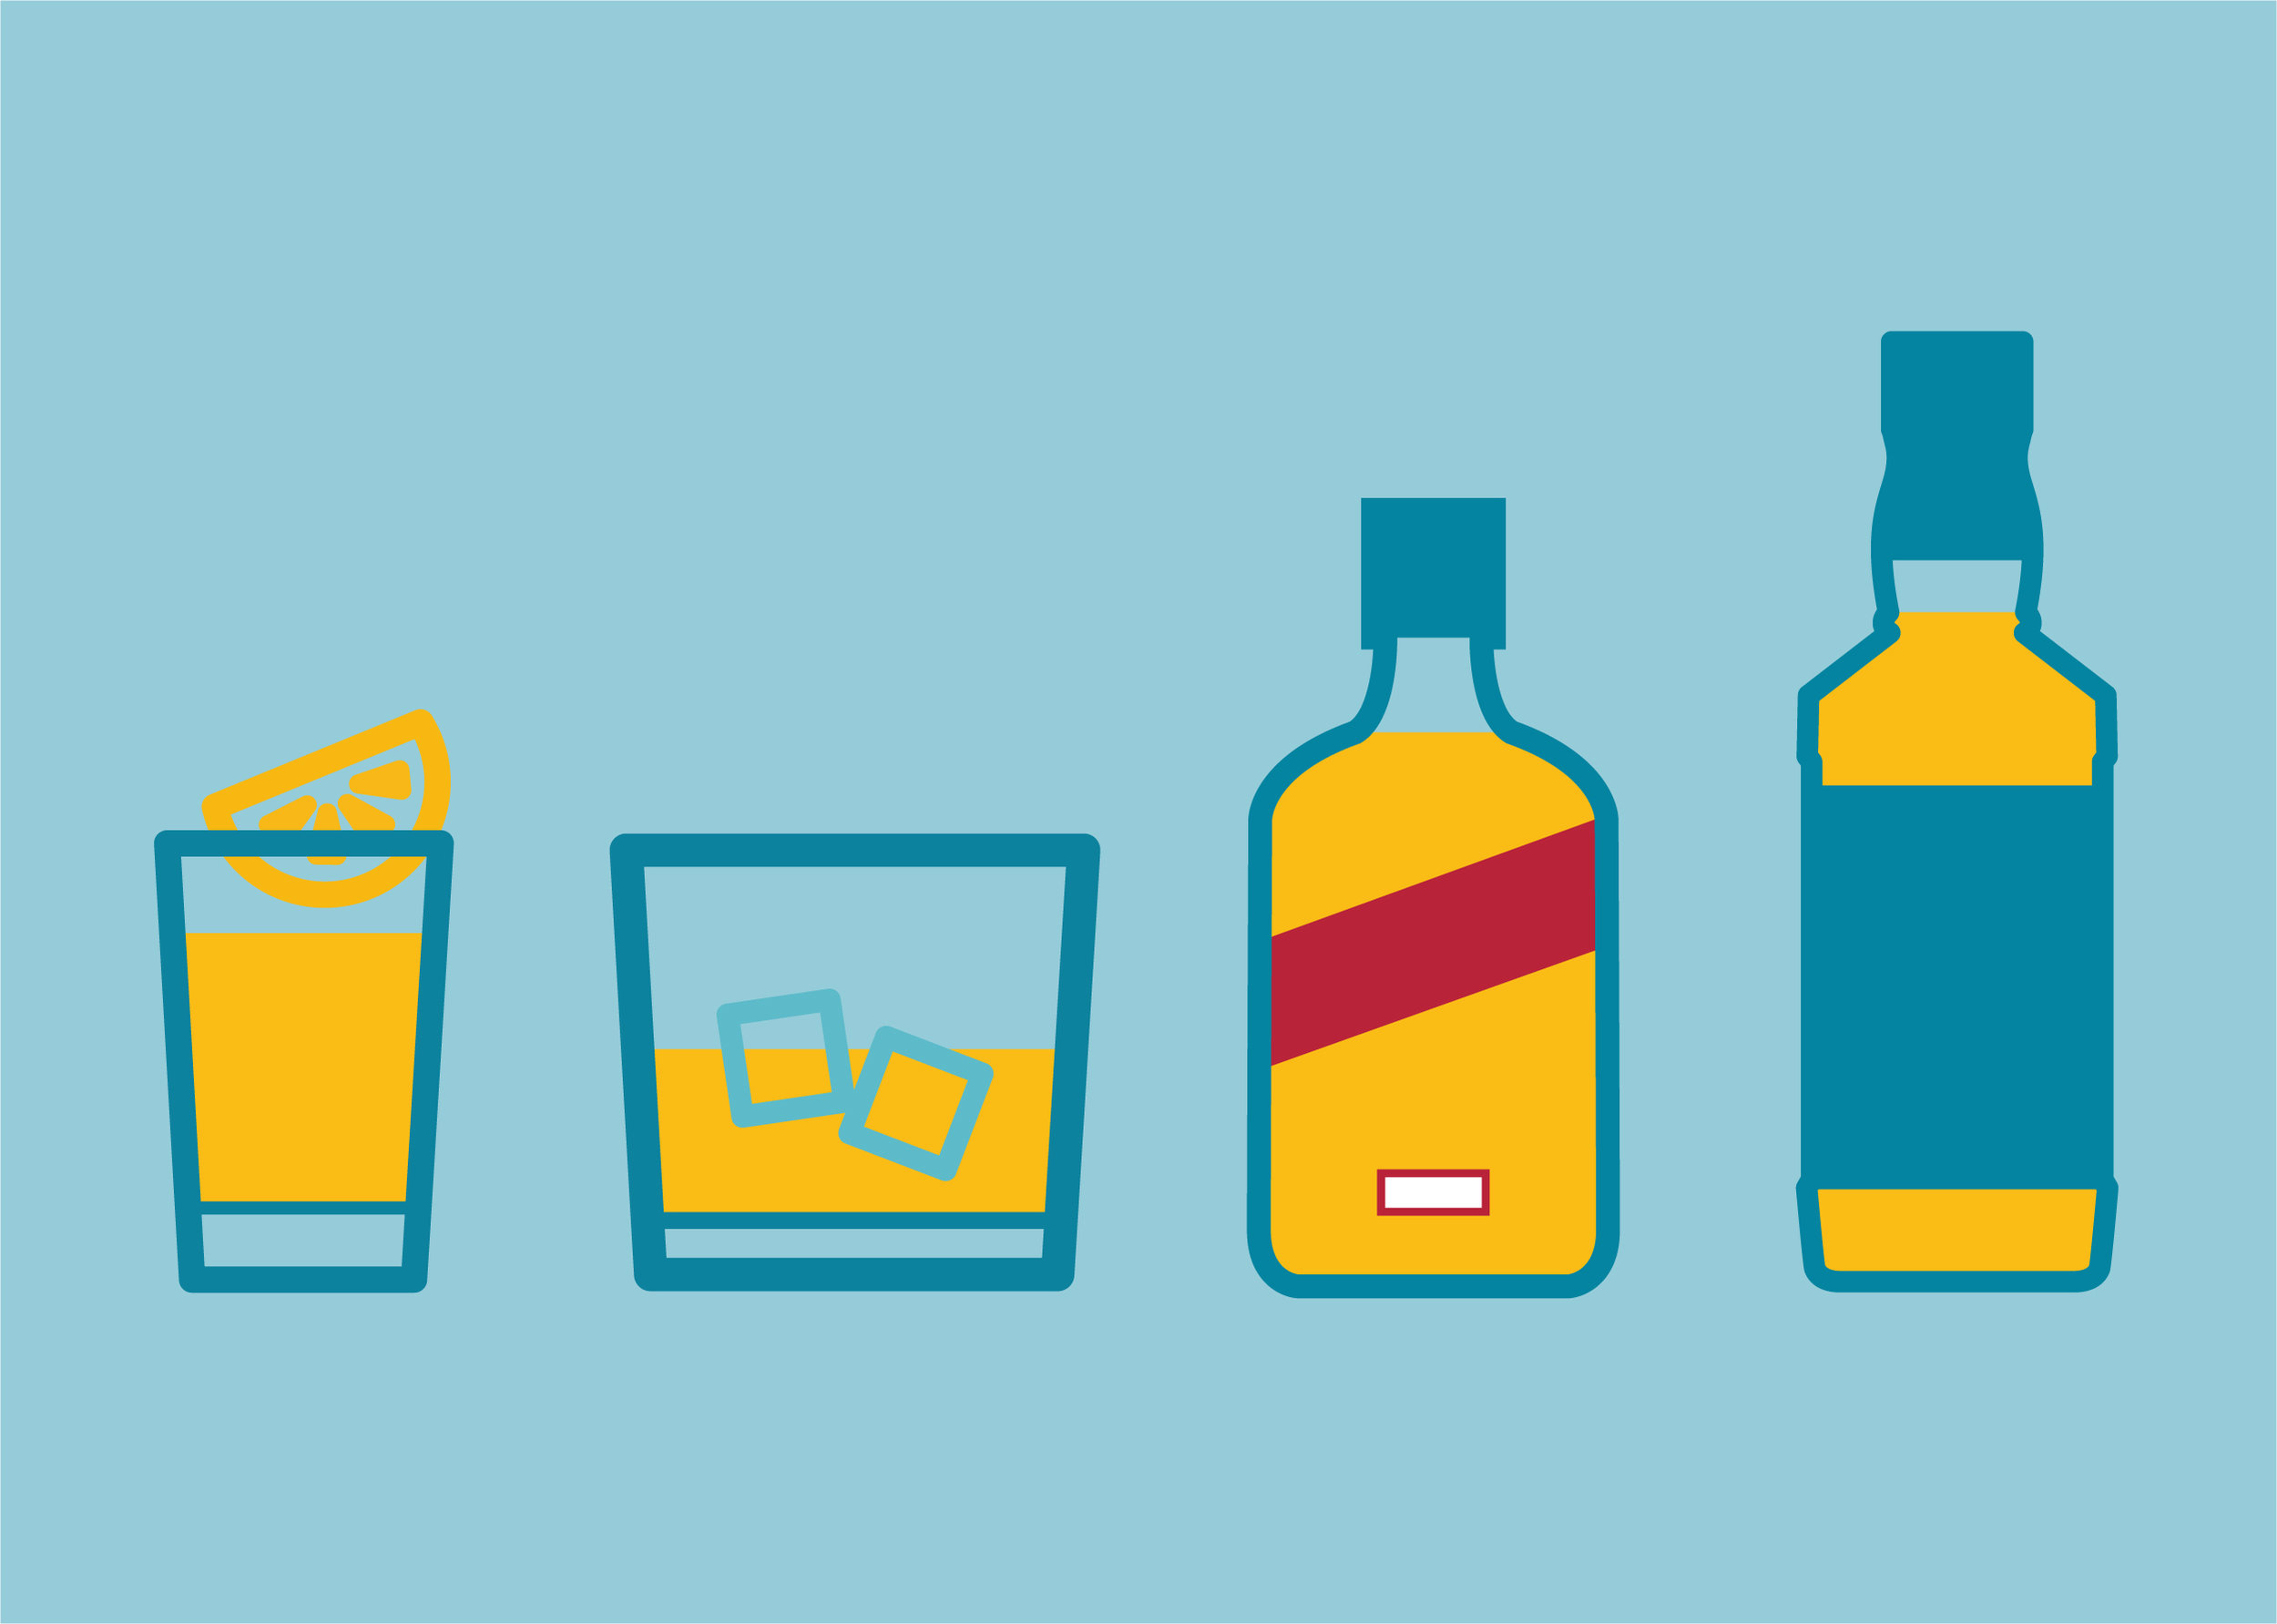 Just 7 double rum and cokes will send you to the weekly alcohol limit.